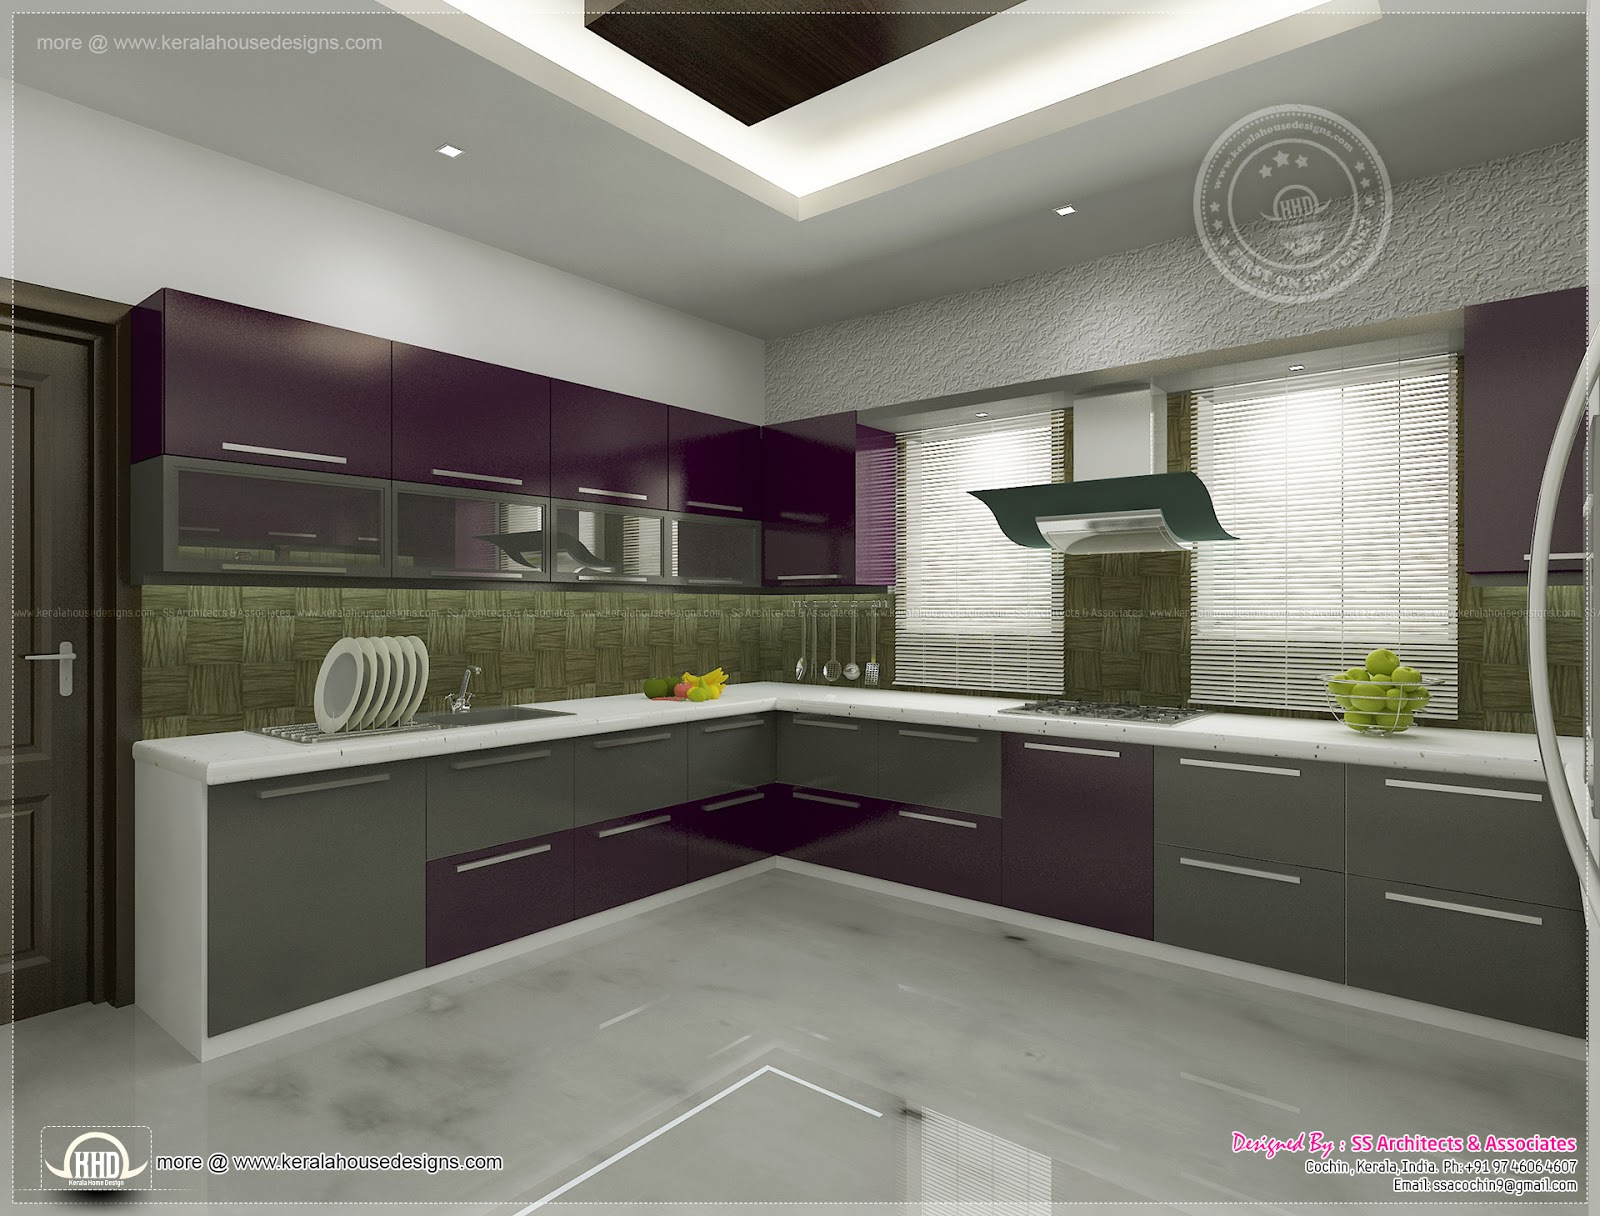 Kitchen interior views by ss architects cochin kerala for Interior houses design pictures